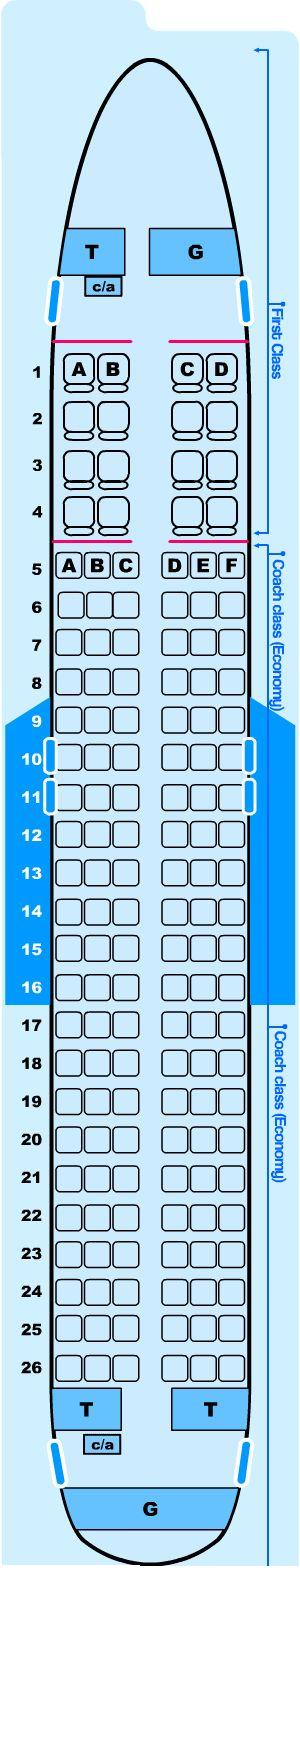 Seat map for Northwest Airlines Airbus A320 200 Domestic